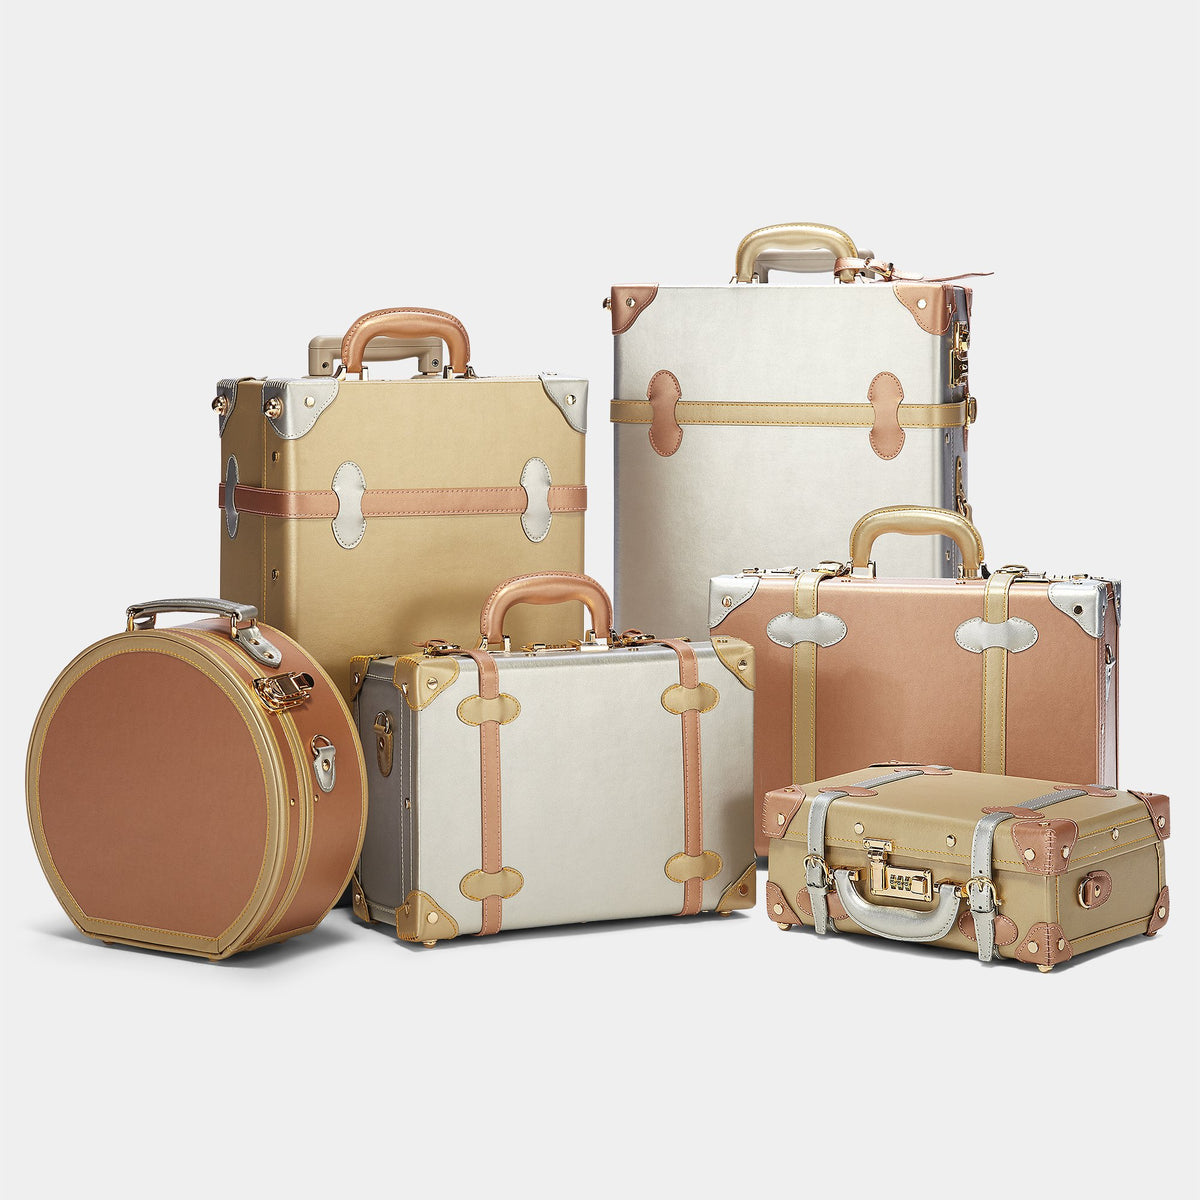 The Alchemist Carryon - Retro-Style Cabin Luggage - alongside 5 other matching cases in the Alchemist collection